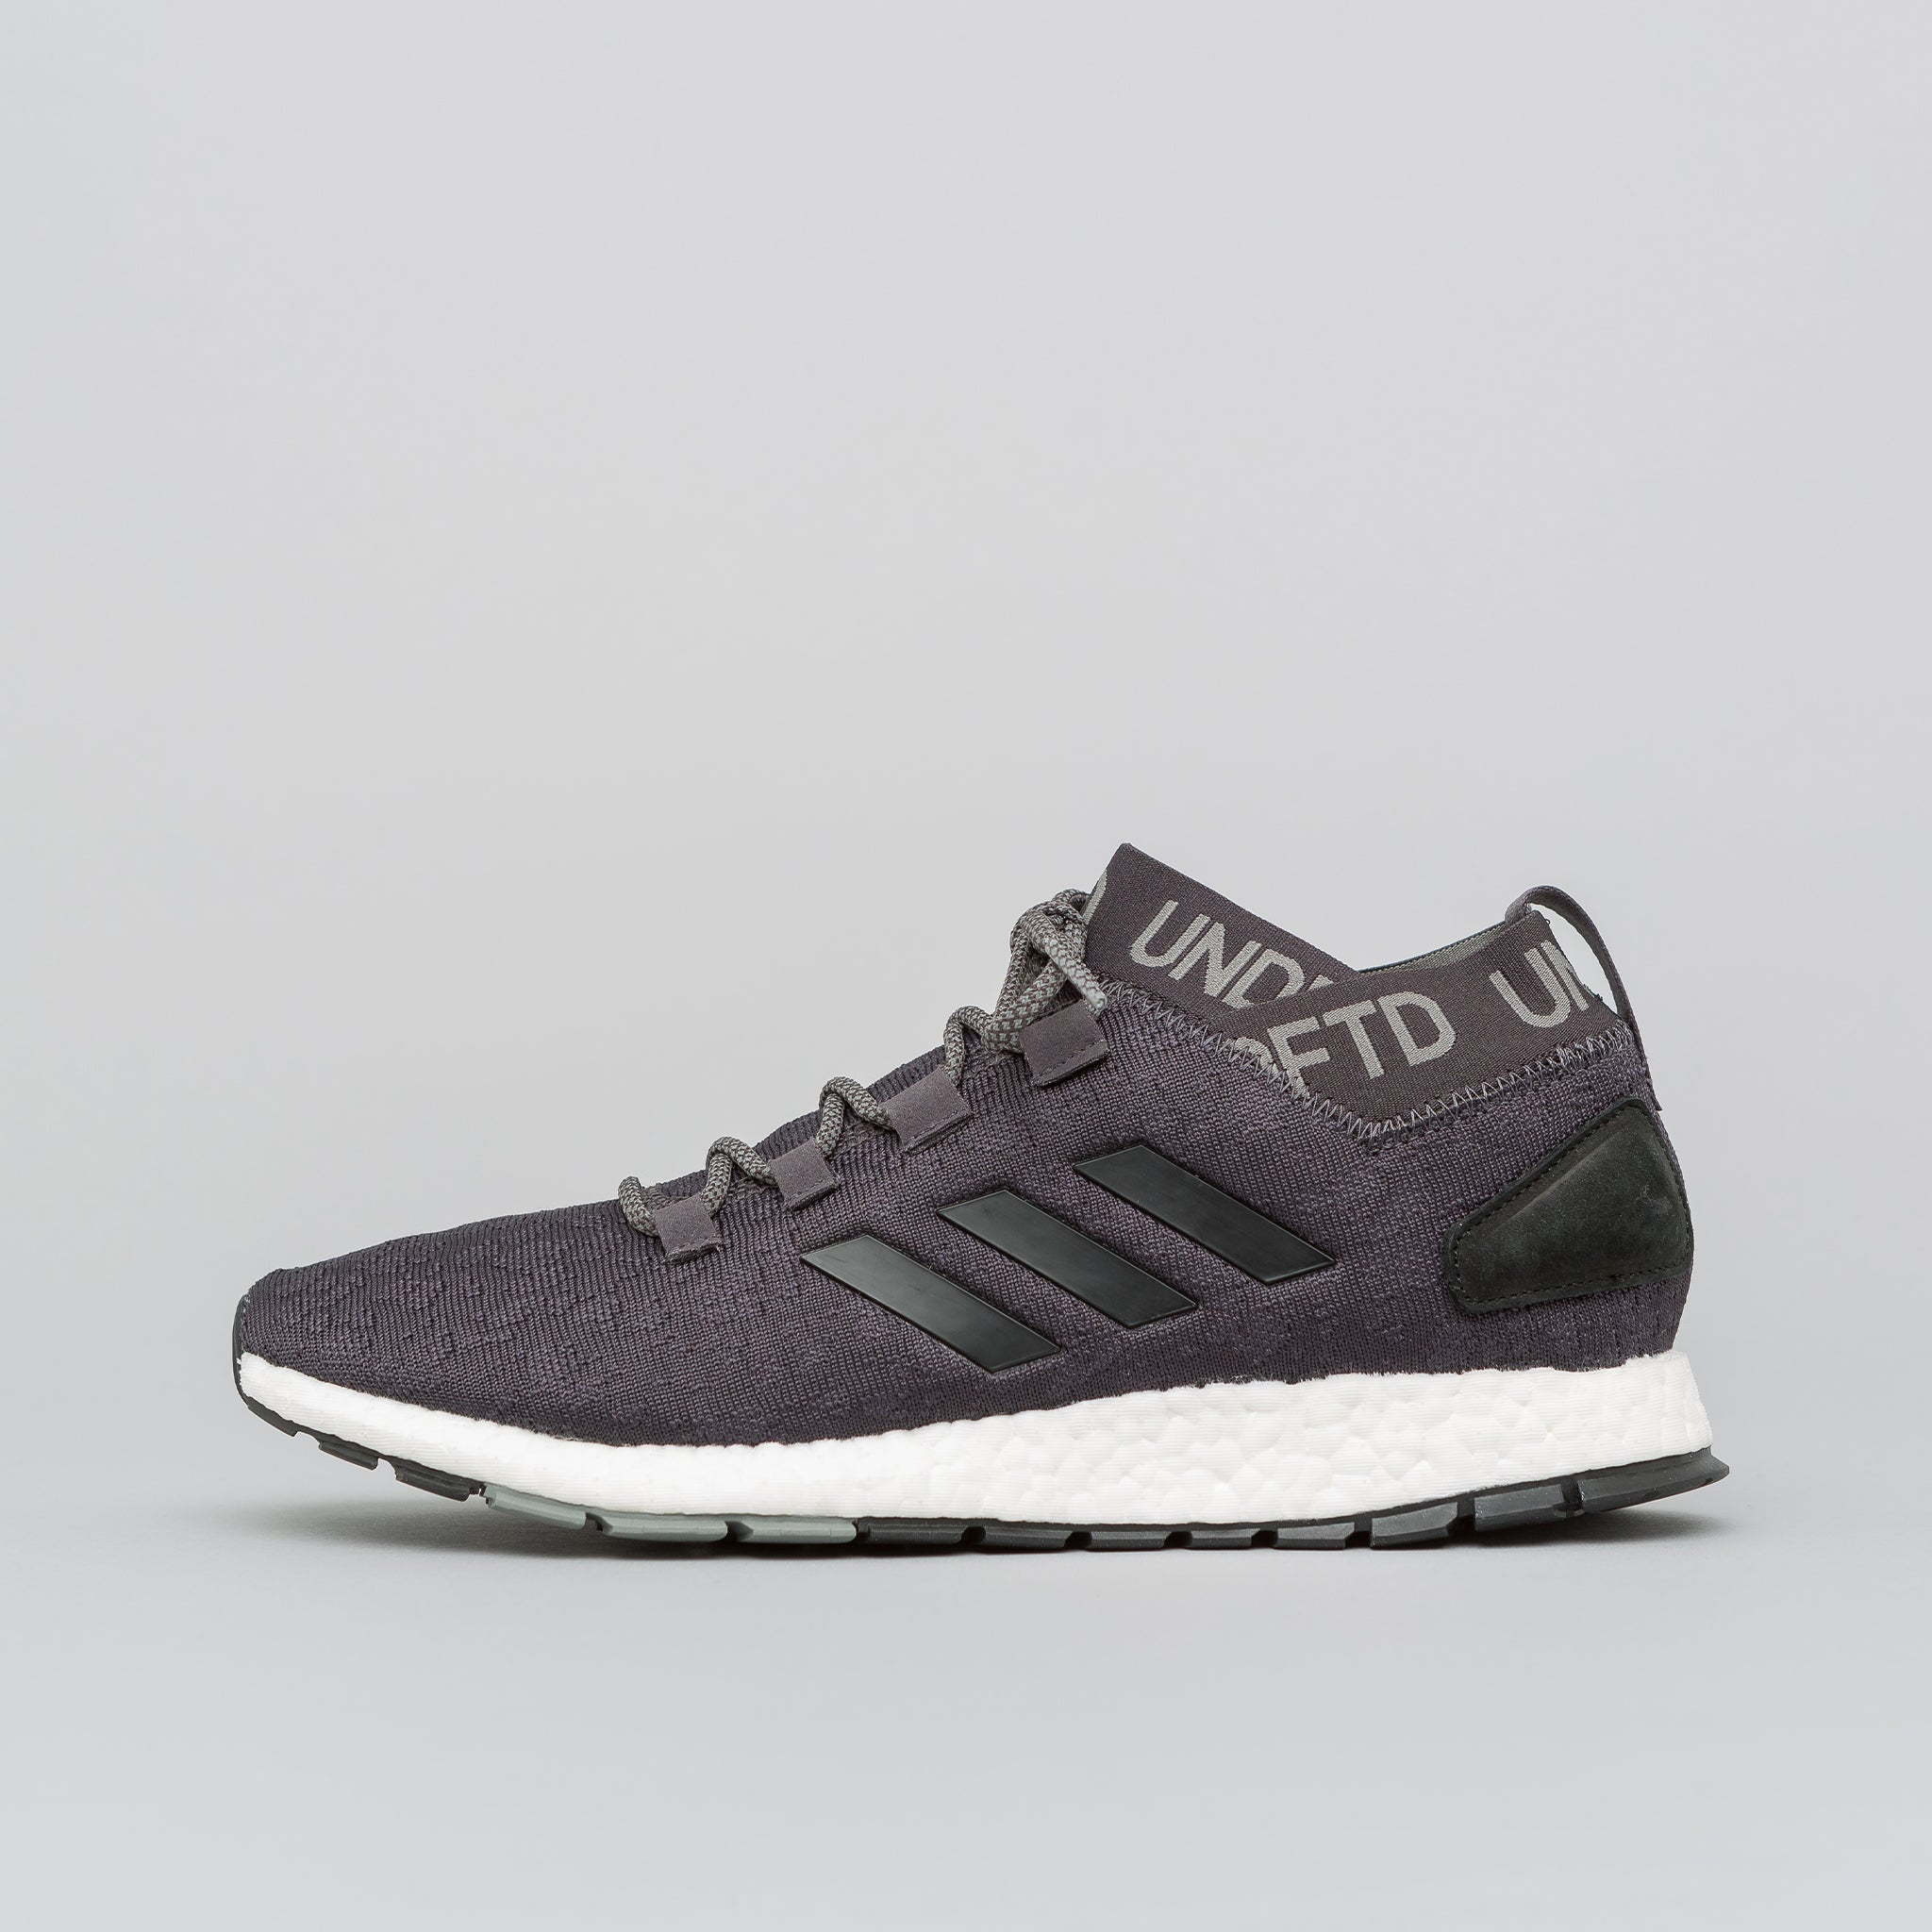 x Undefeated Pureboost RBL in Core Black